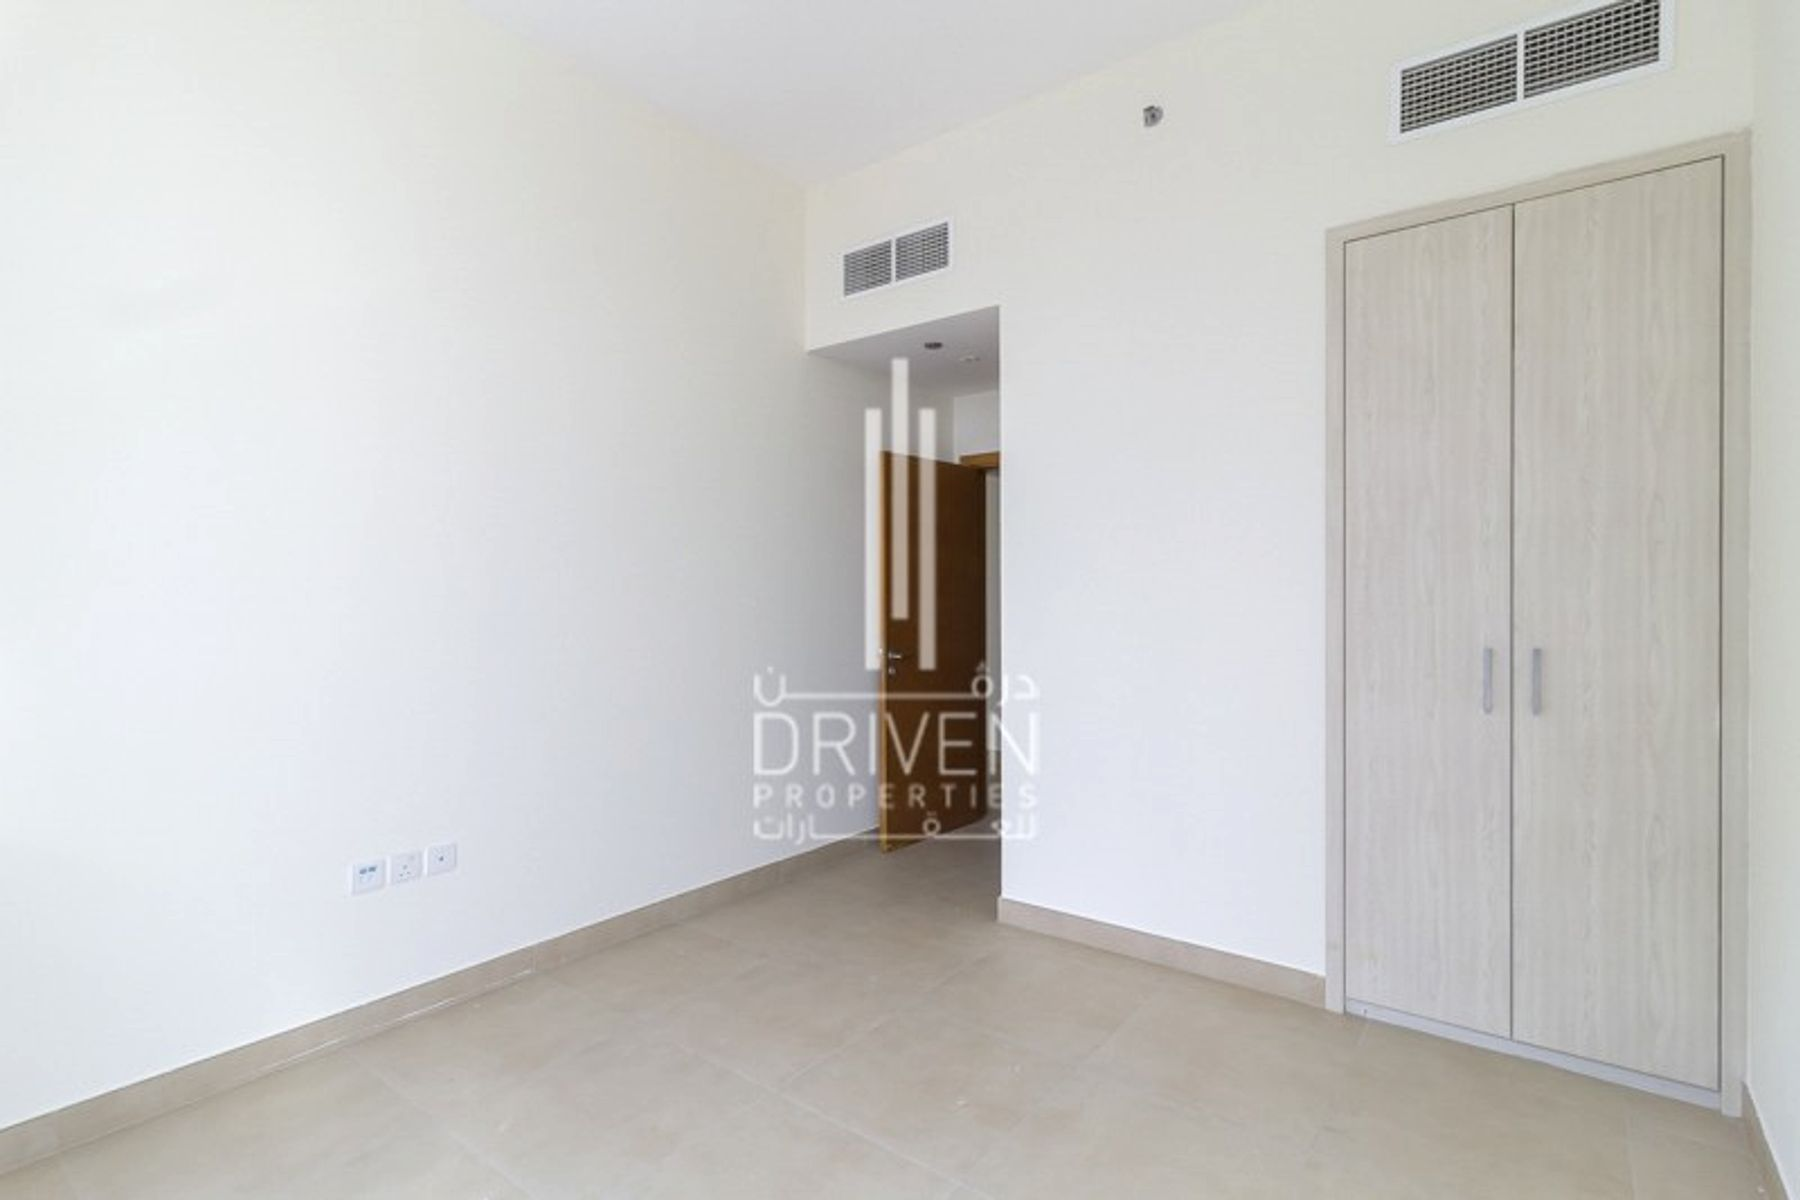 Apartment for Rent in Westburry Tower 1, Business Bay